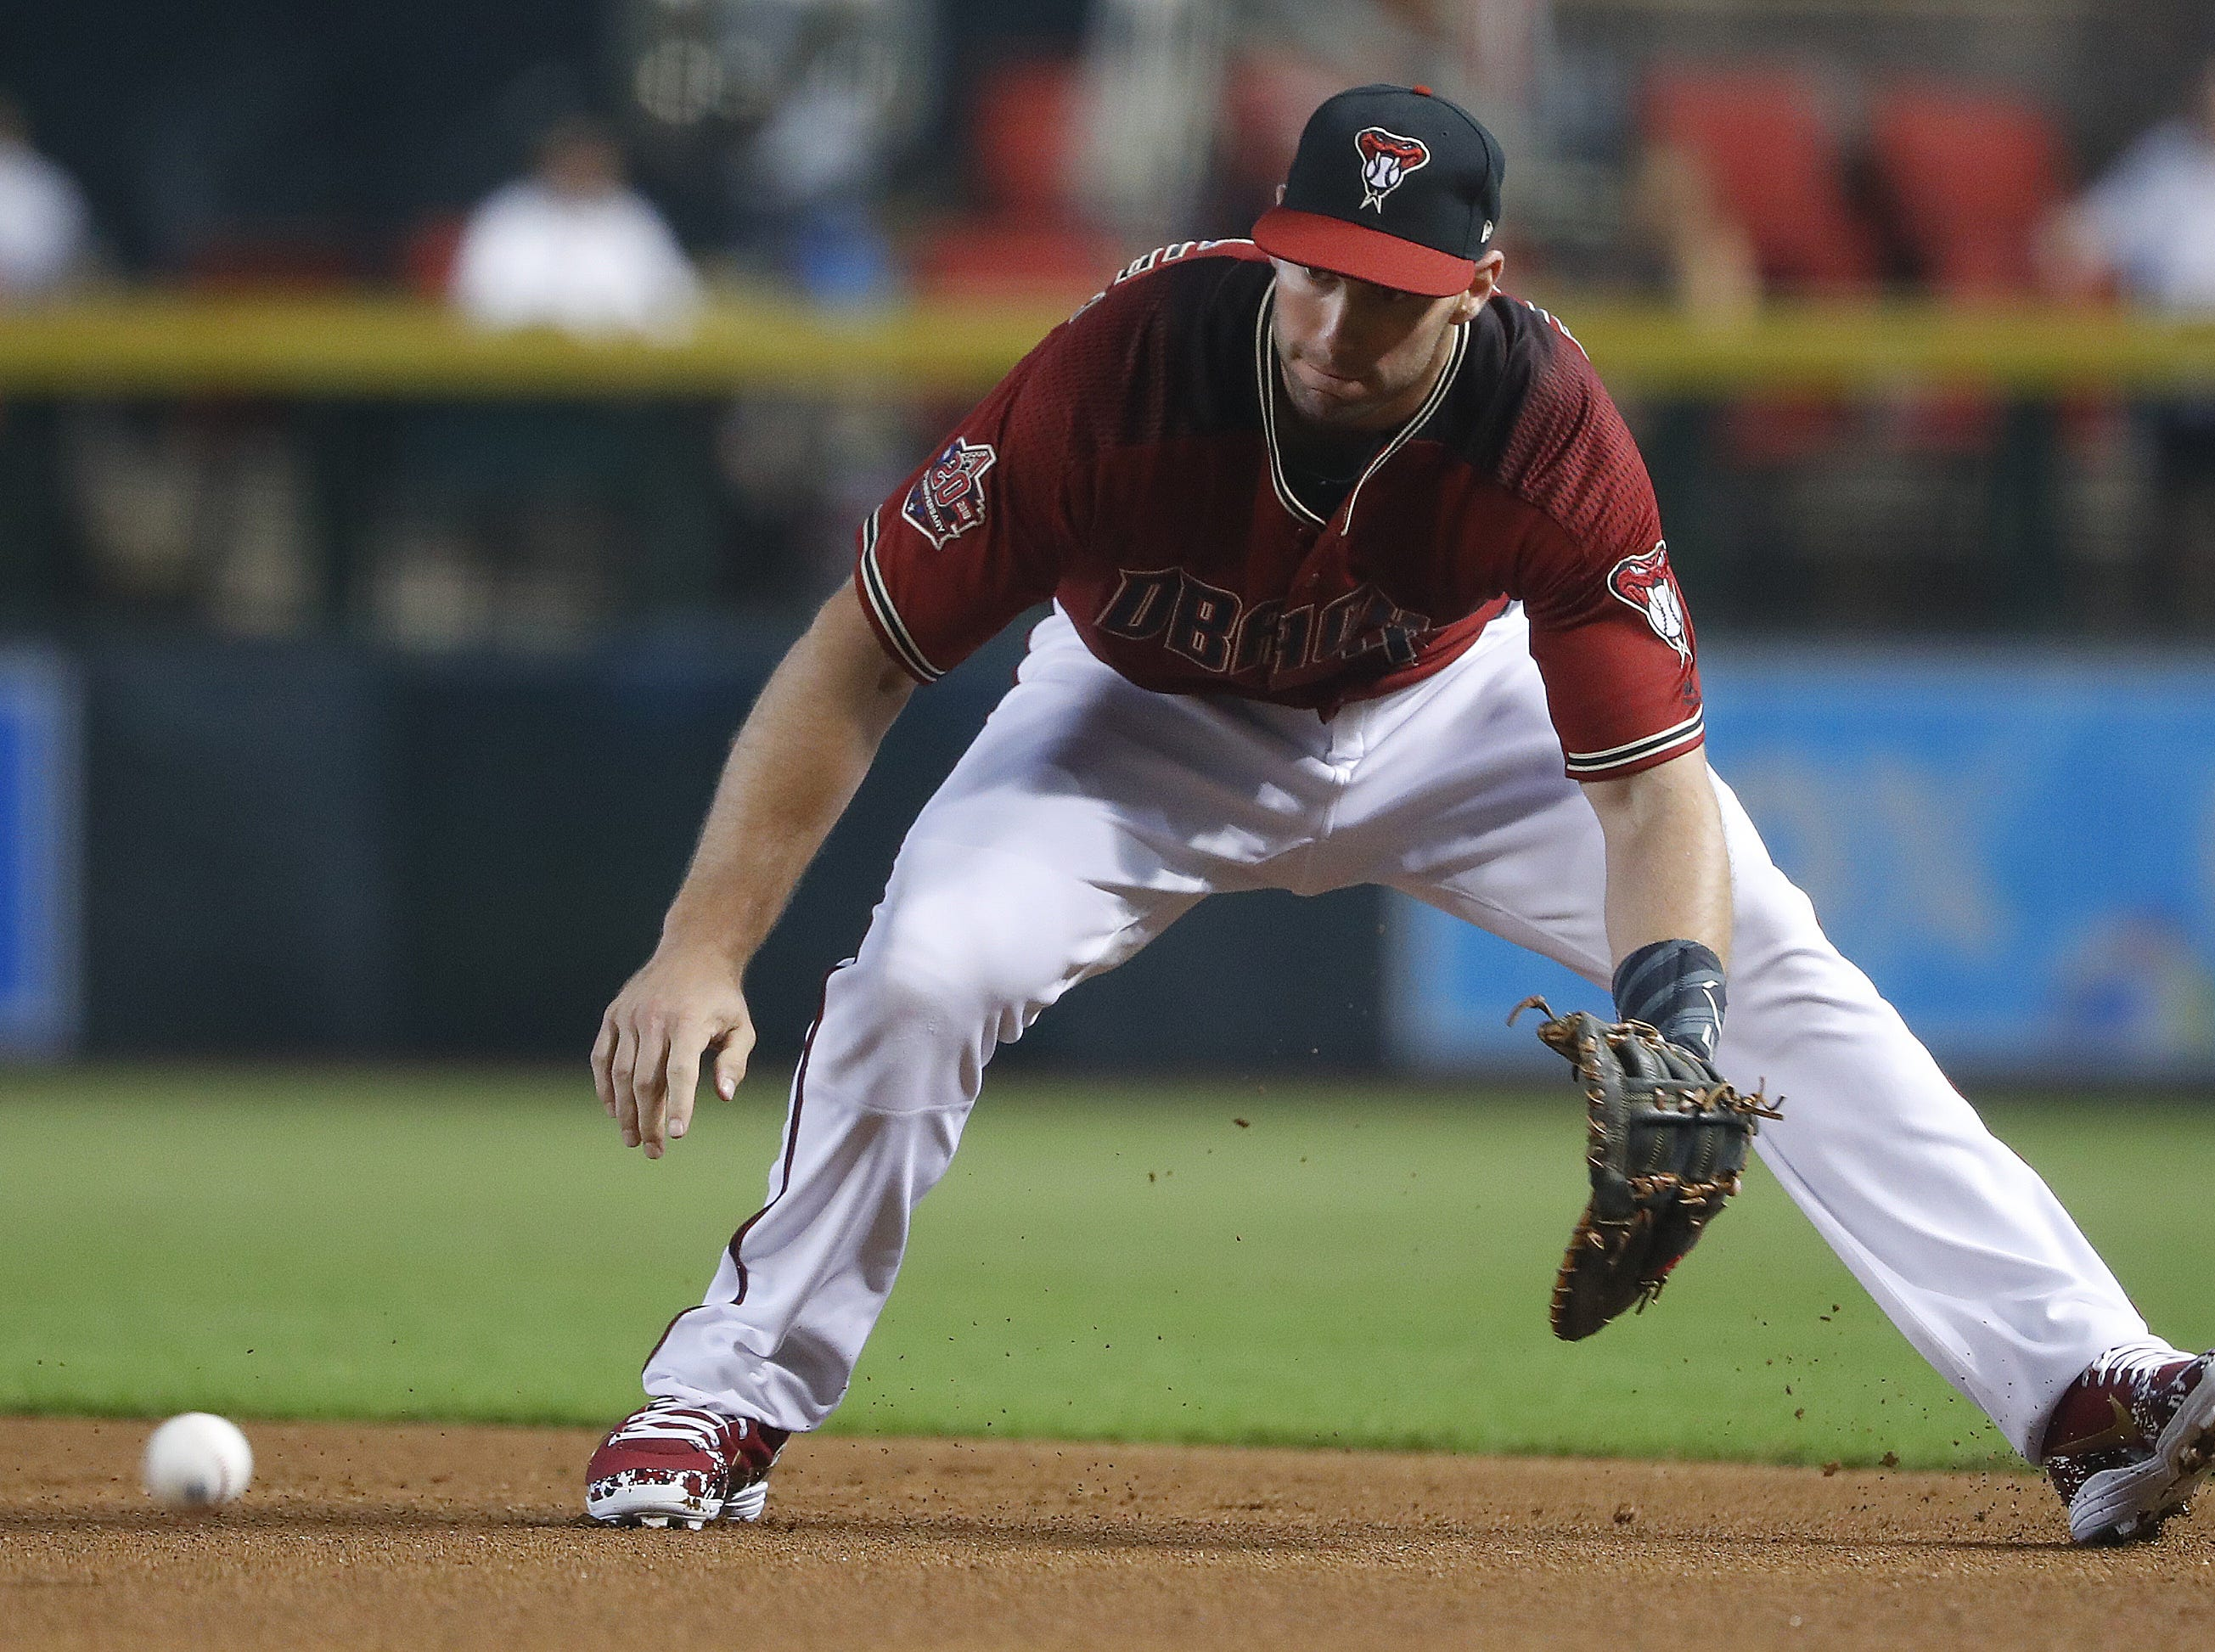 Diamondbacks Paul Goldschmidt (44) fields a groundball against the Braves during the first inning at Chase Field in Phoenix, Ariz. on Sept. 9, 2018.